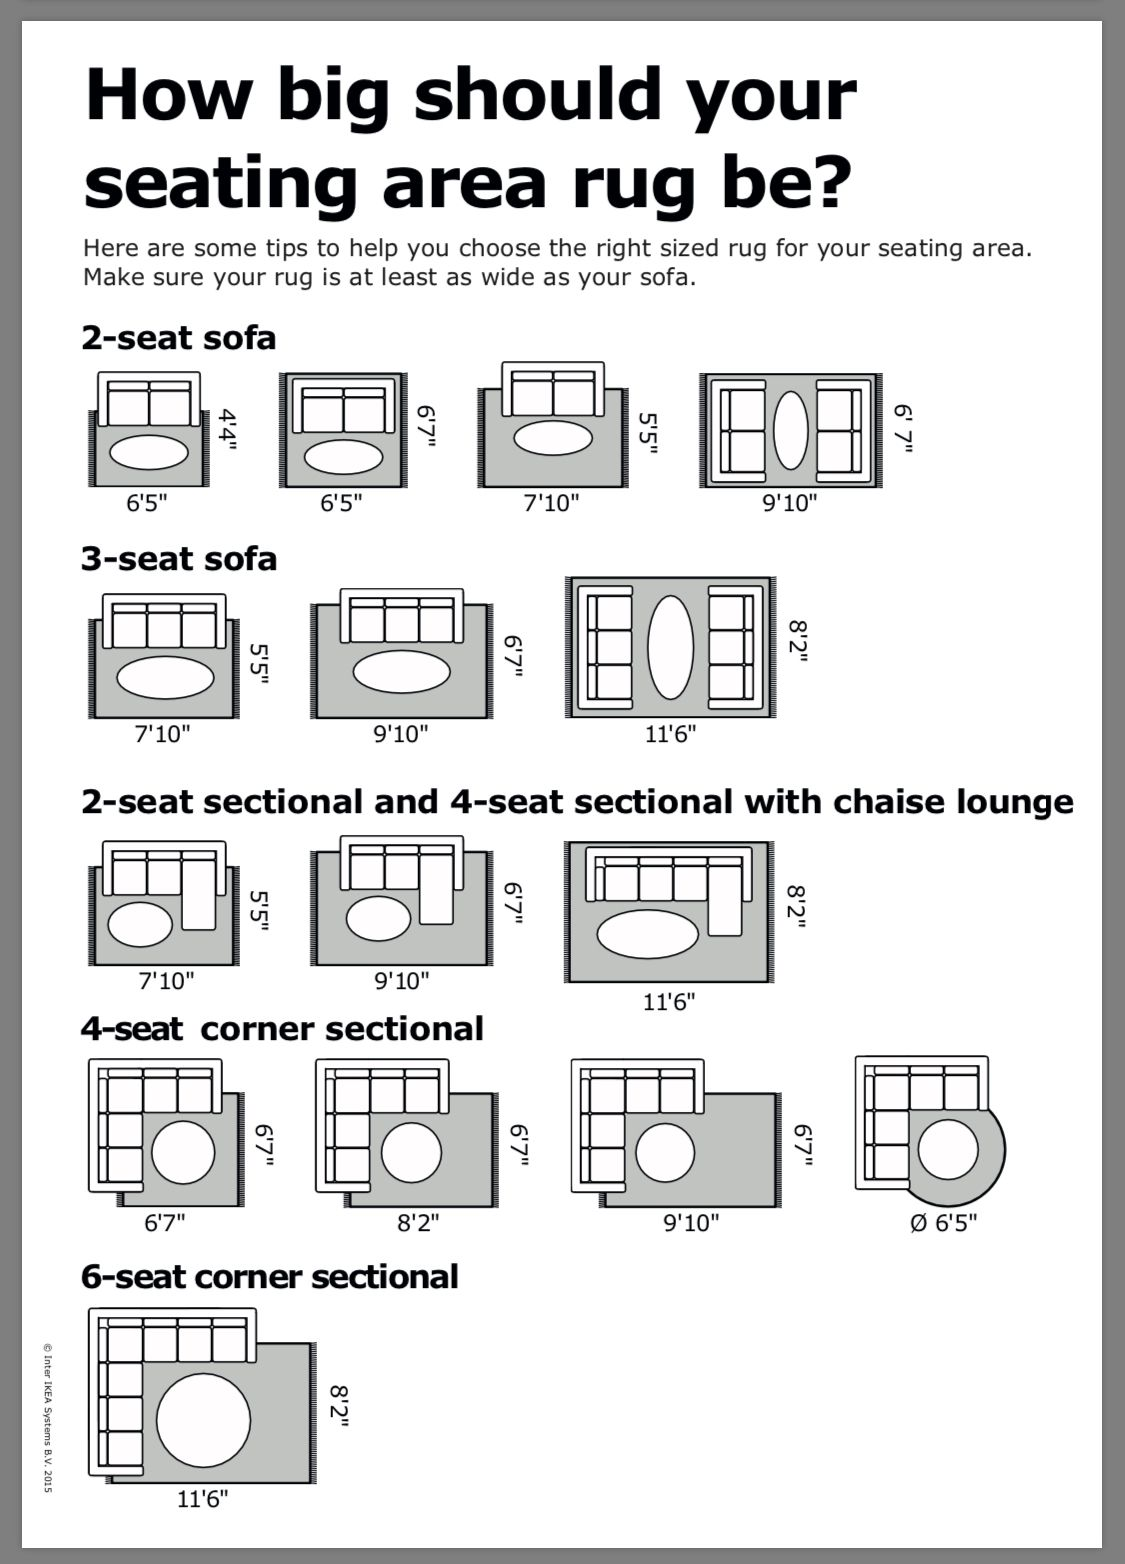 Pin By Angel M On Inredningsguider Living Room Rug Placement Rugs In Living Room Living Room Rug Size